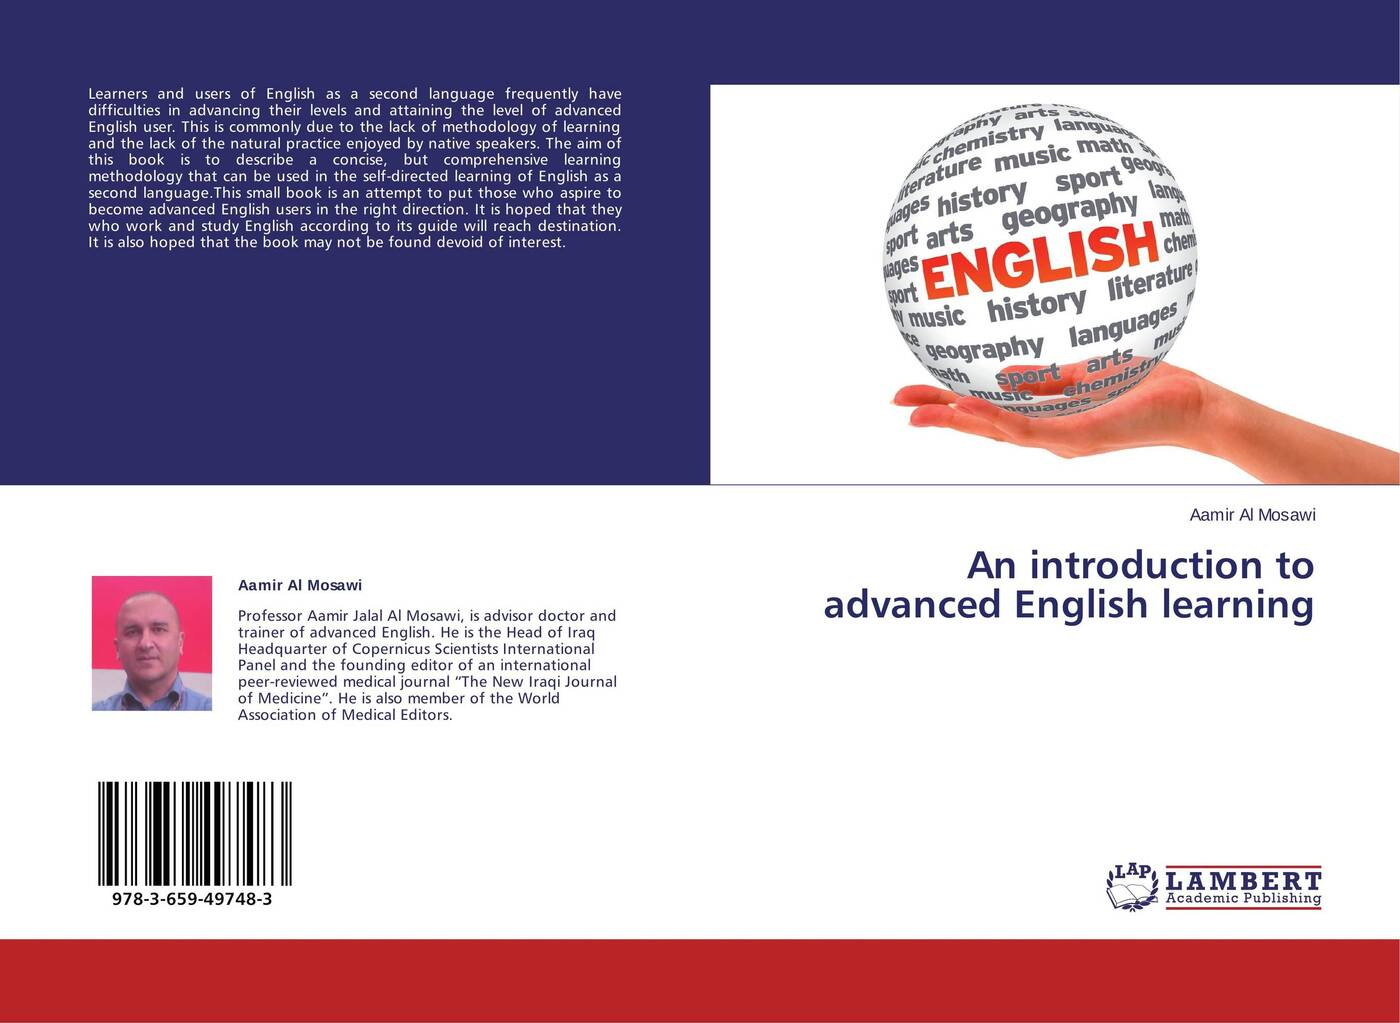 Aamir Al Mosawi An introduction to advanced English learning